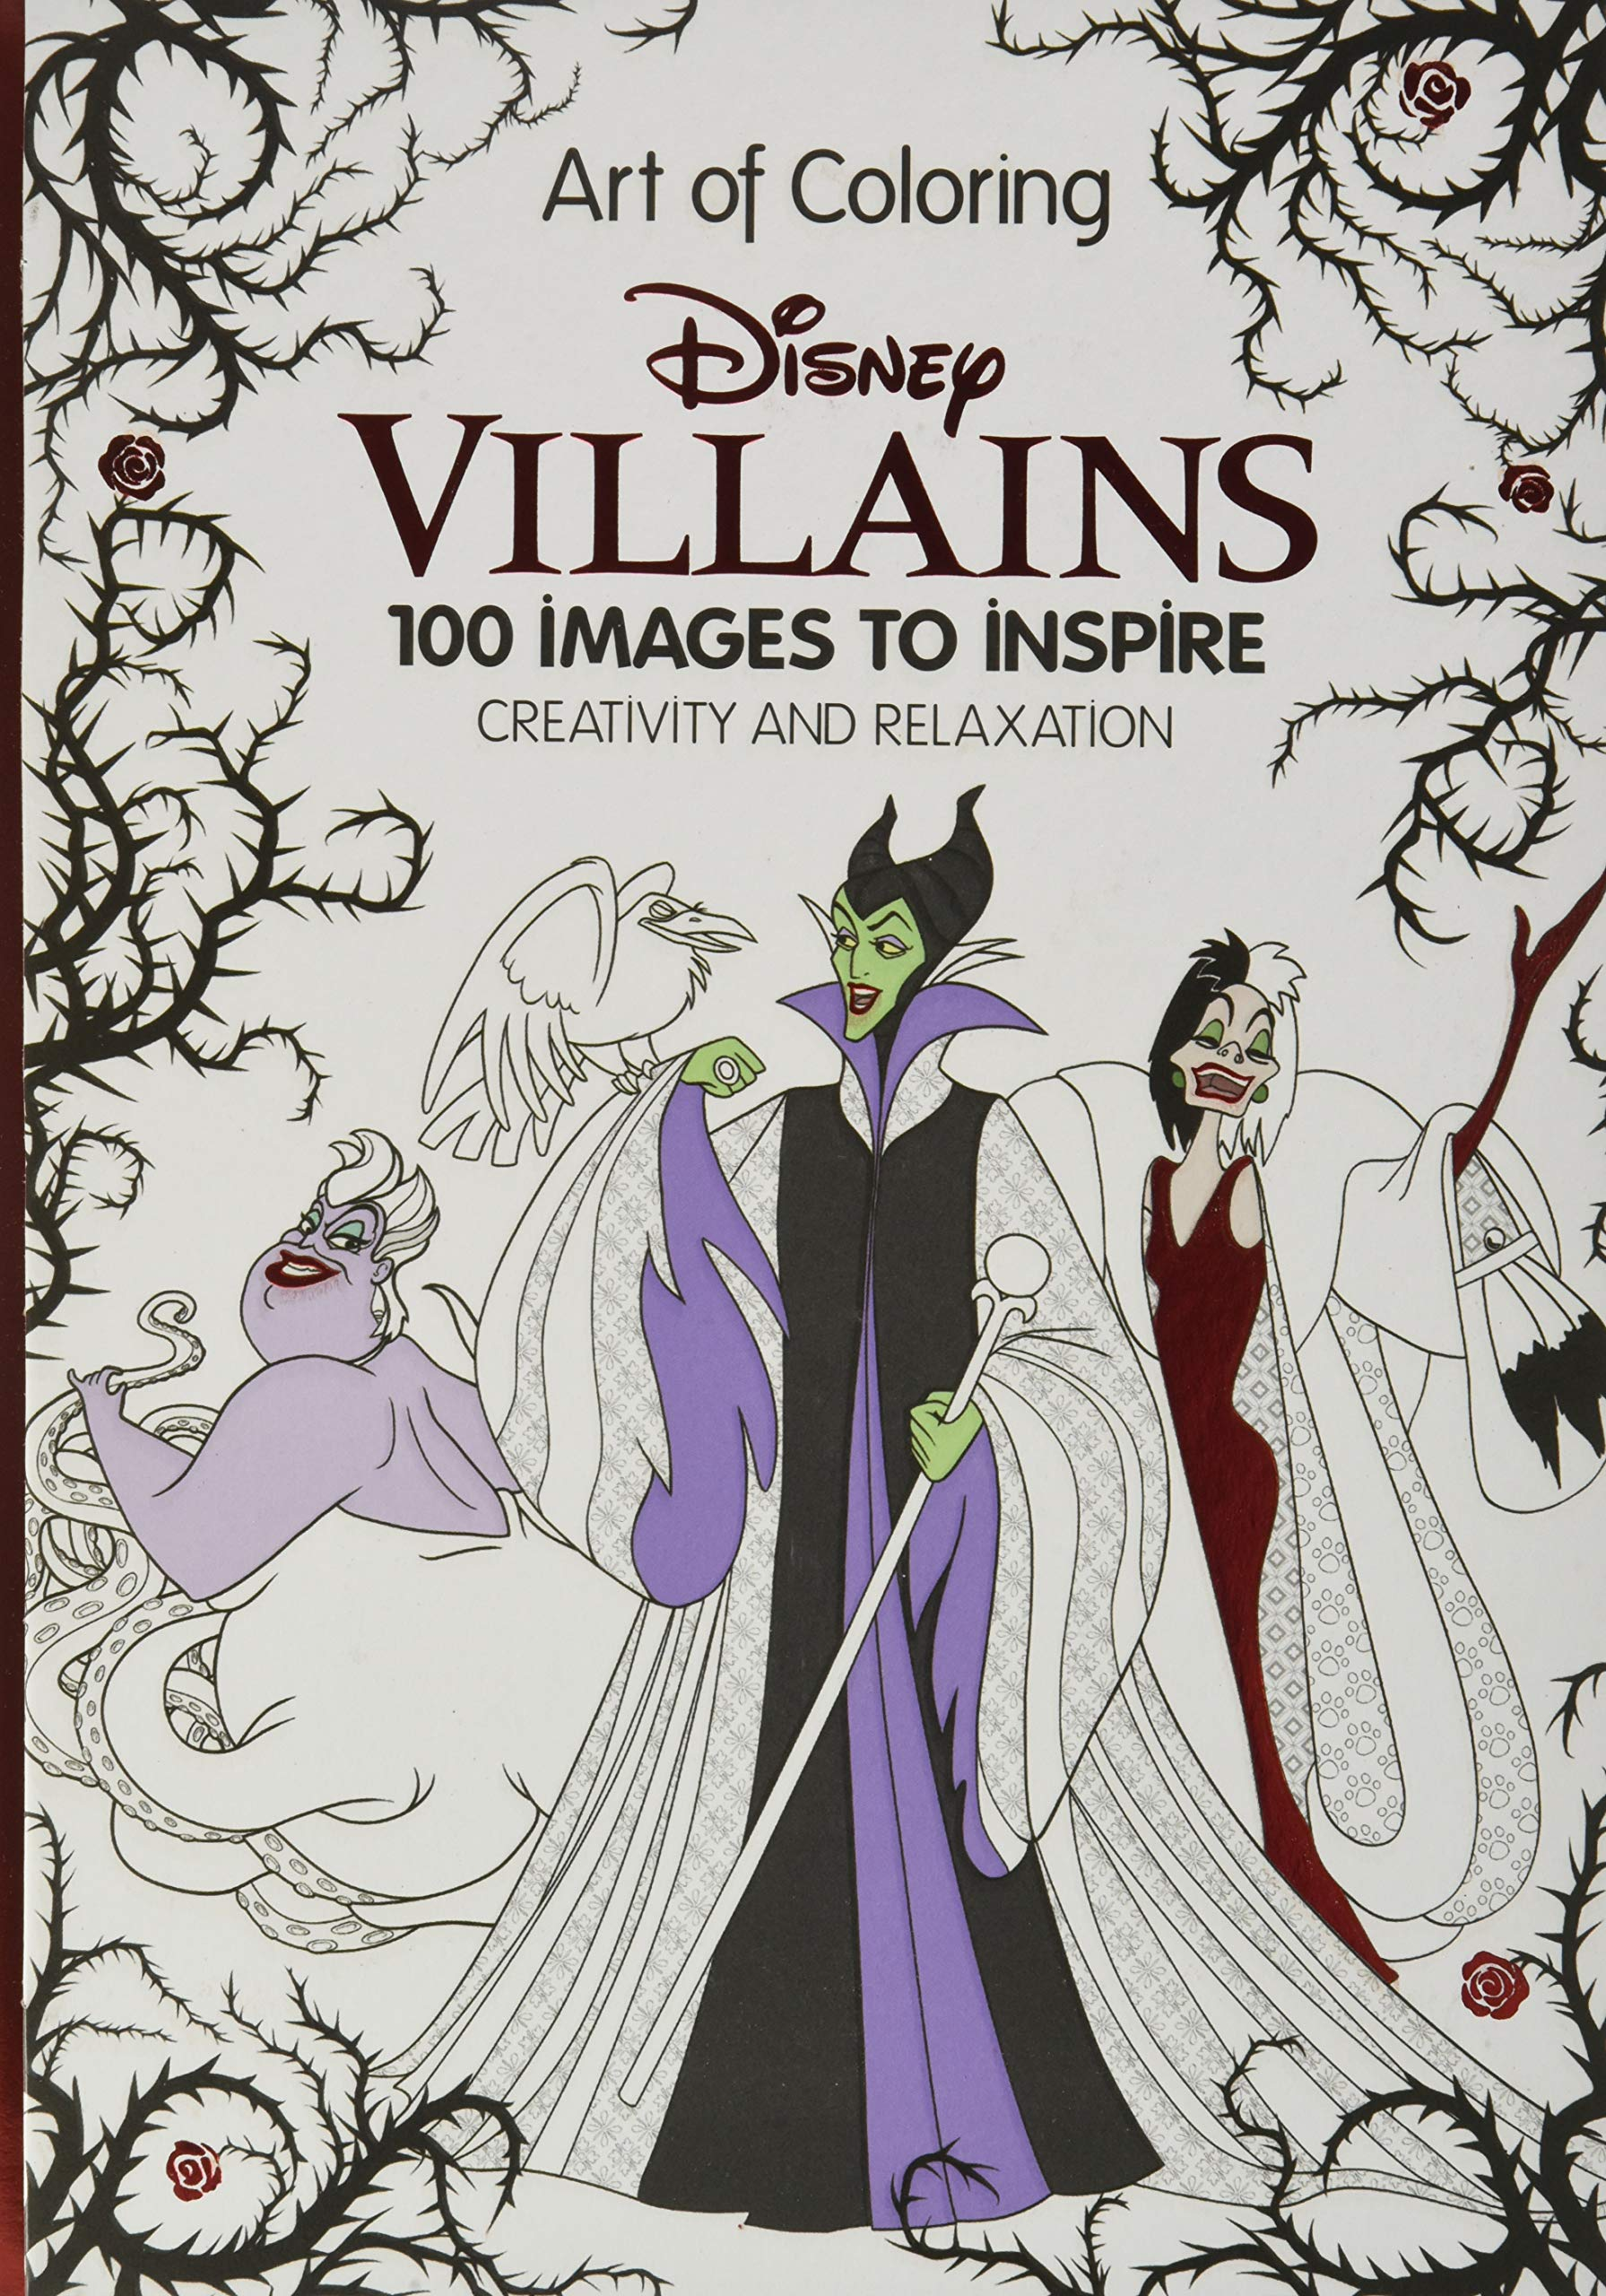 Amazon Com Art Of Coloring Disney Villains 100 Images To Inspire Creativity And Relaxation 9781484780367 Disney Book Group Disney Book Group Books